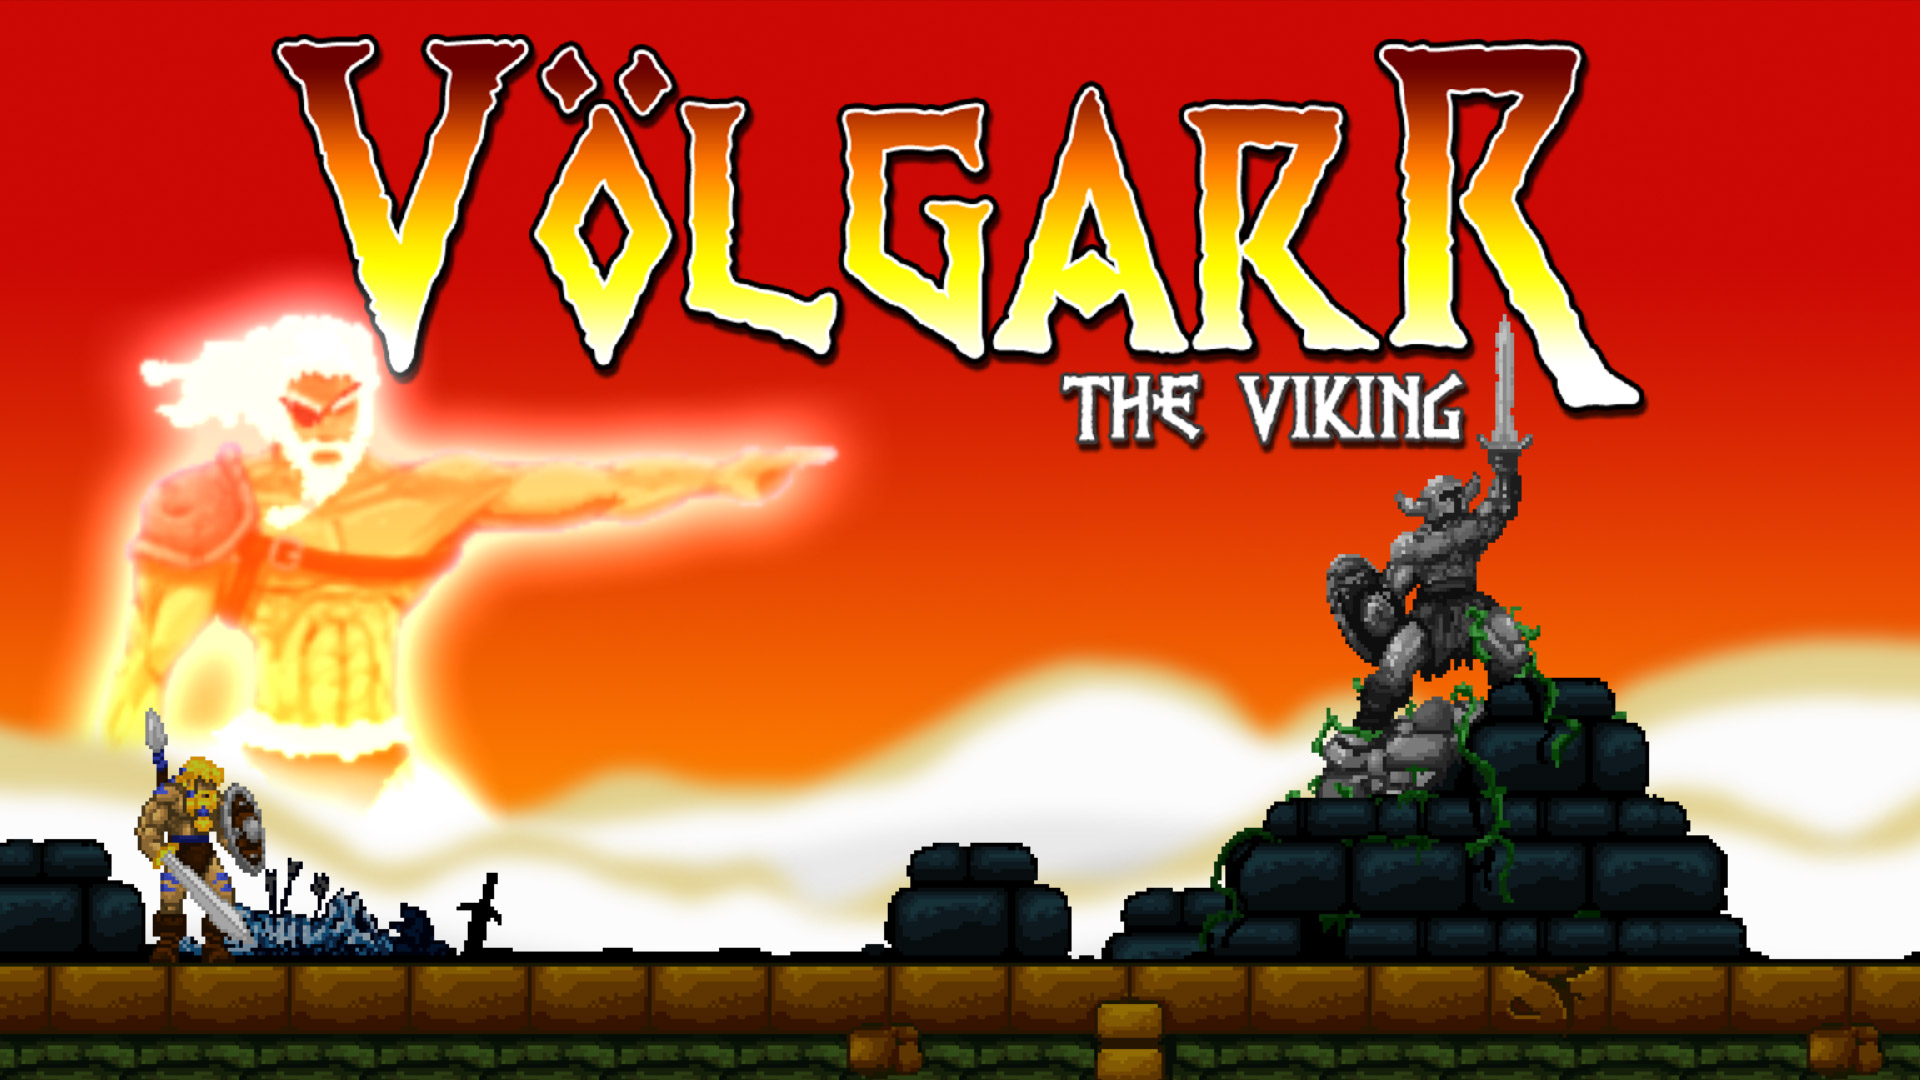 Volgarr the Viking Wallpaper in 1920x1080